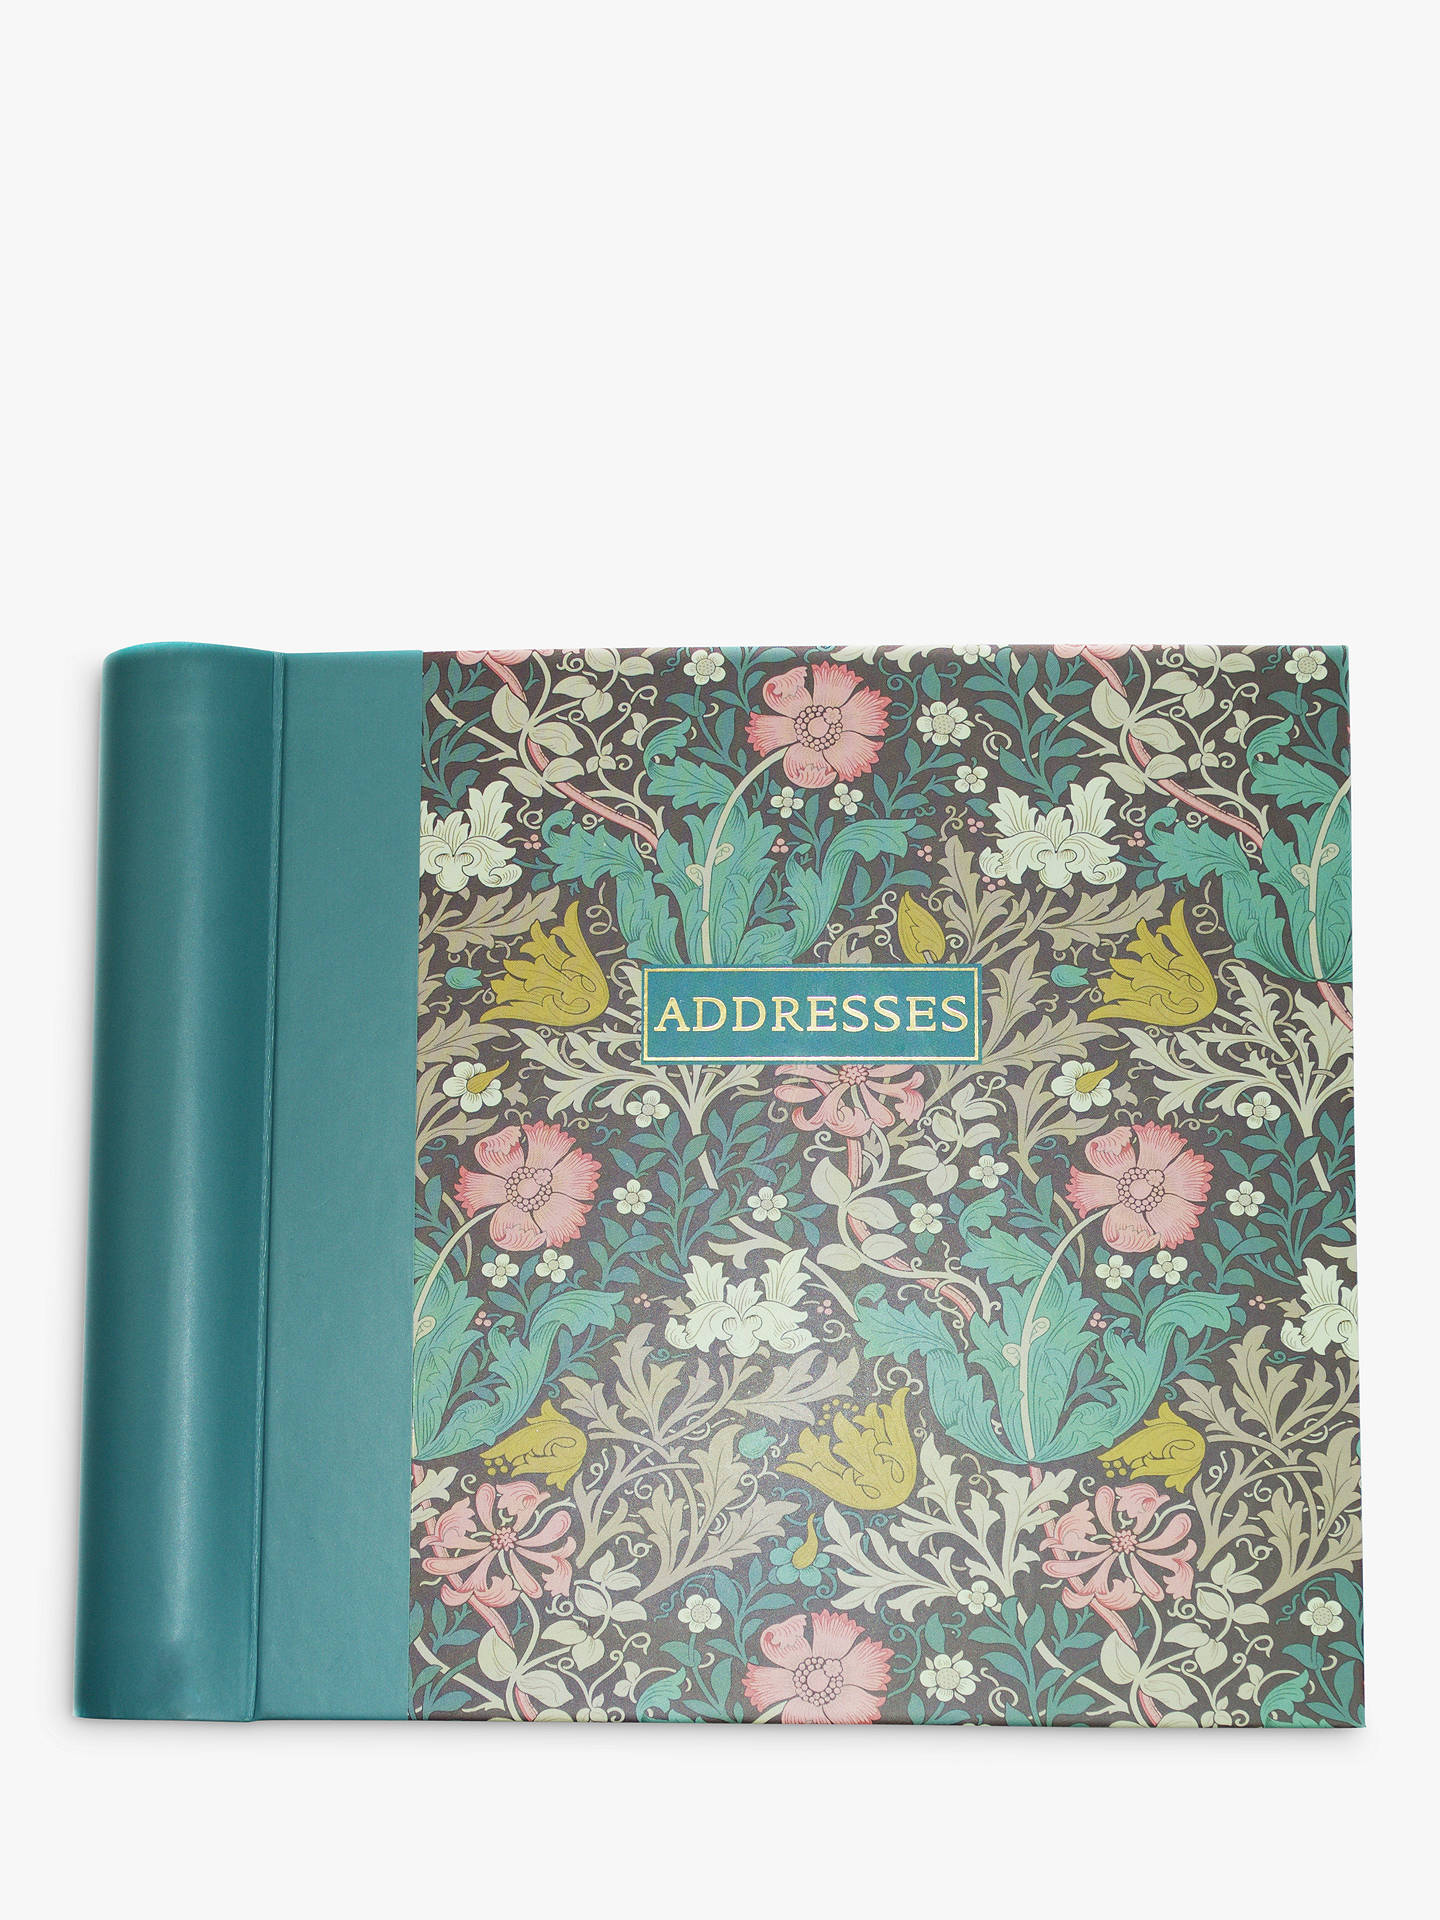 Morris & Co. Address Book by Morris & Co.